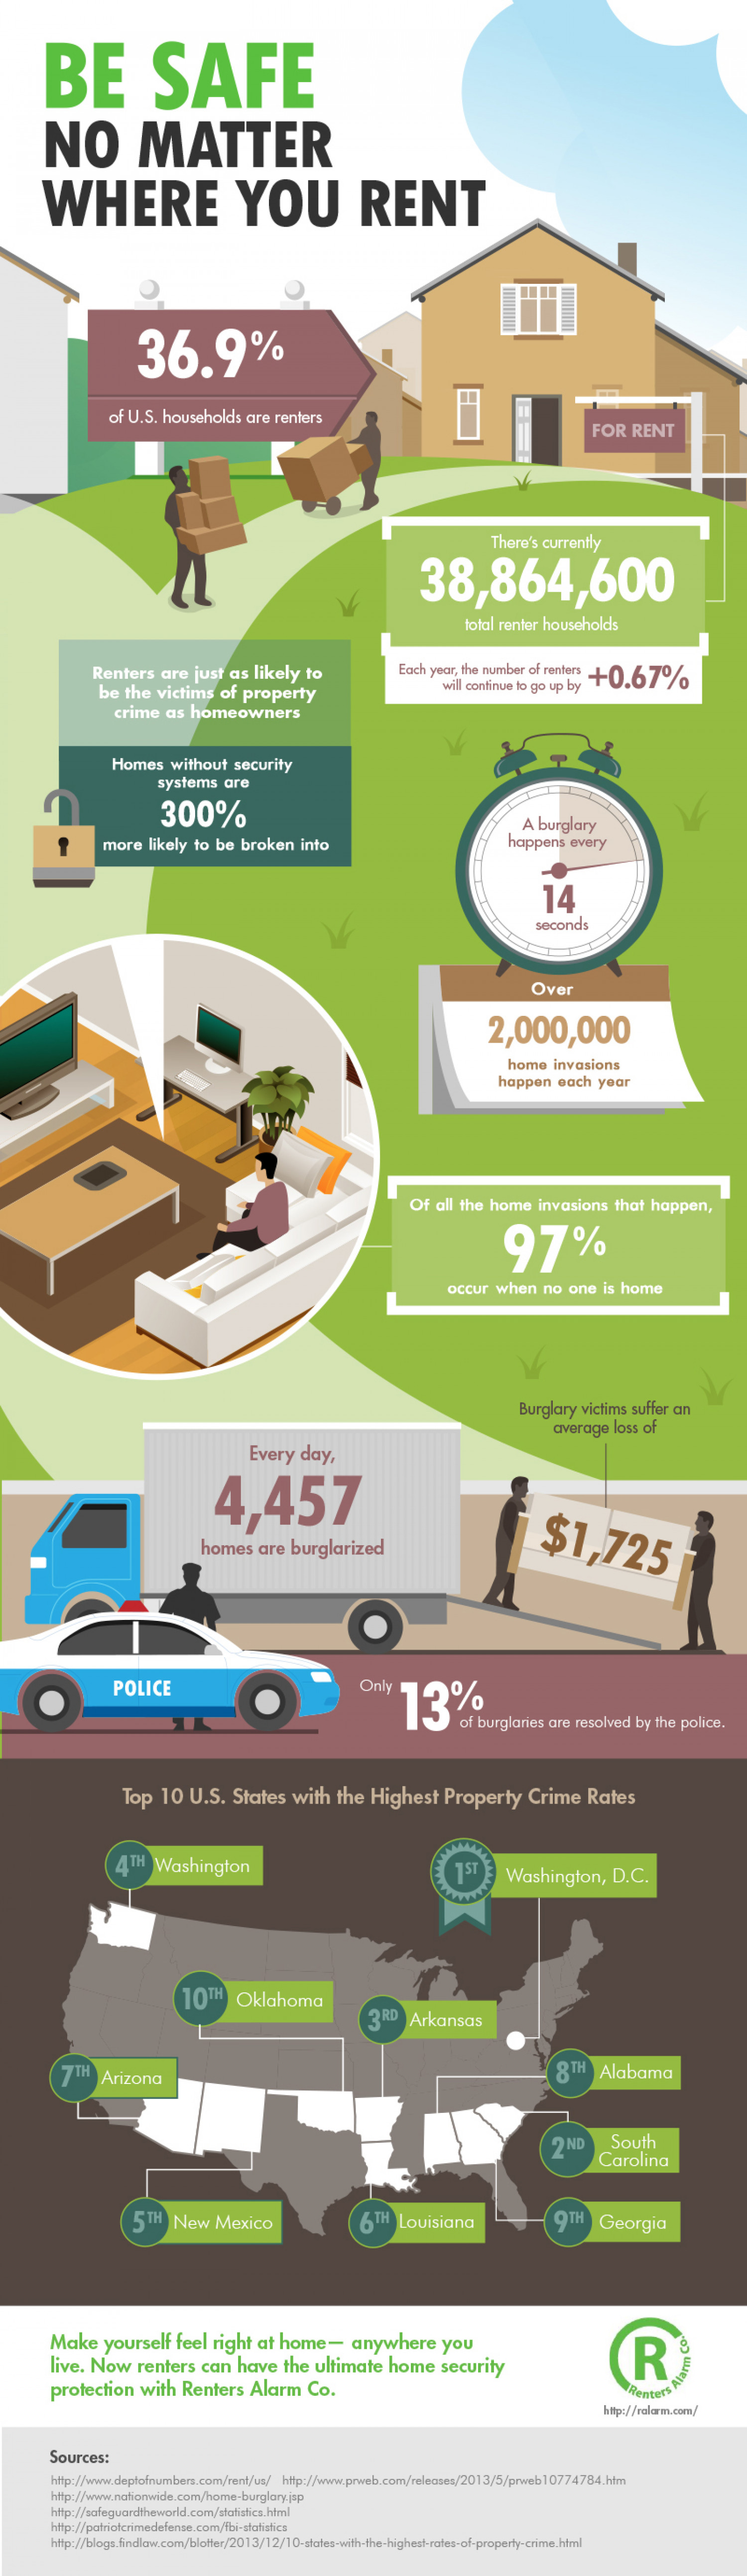 Be Safe No Matter Where You Rent Infographic